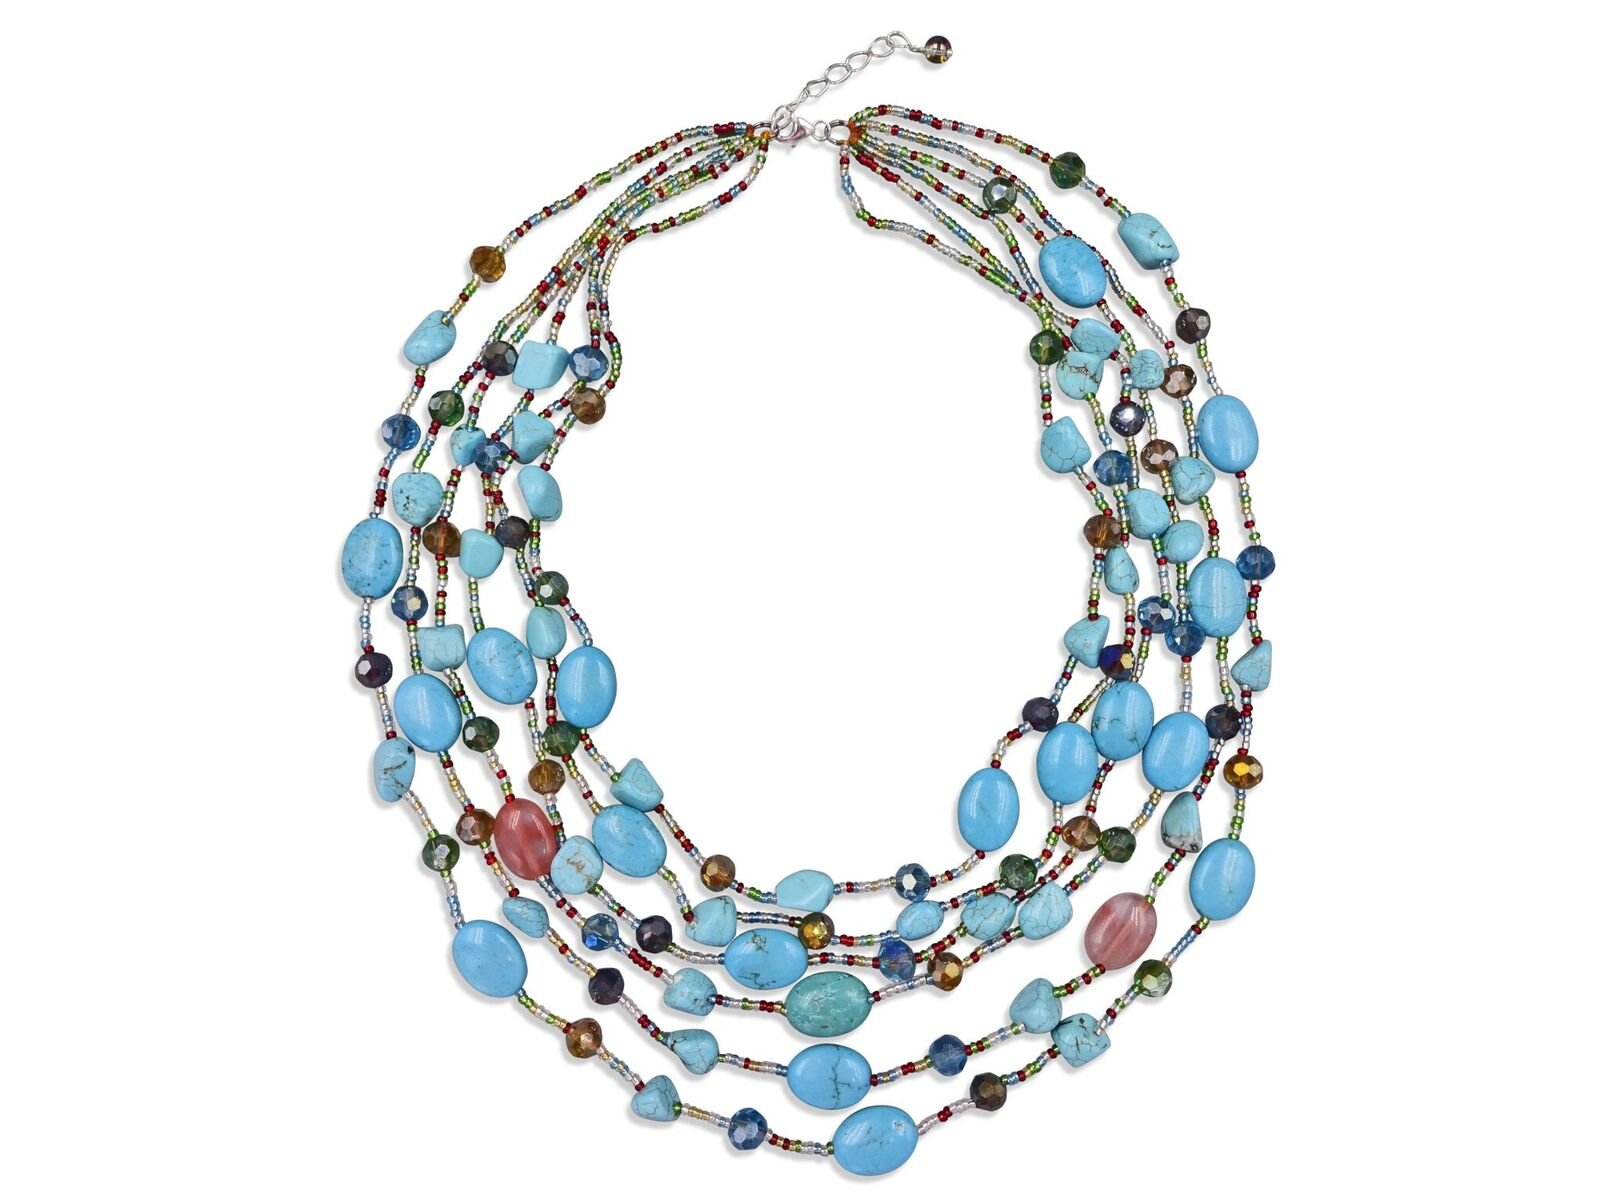 MGR Multiple 6-Strand Layered Beaded Blue Magnesite Turquoise Statement Style Necklace, 18''-24'' long